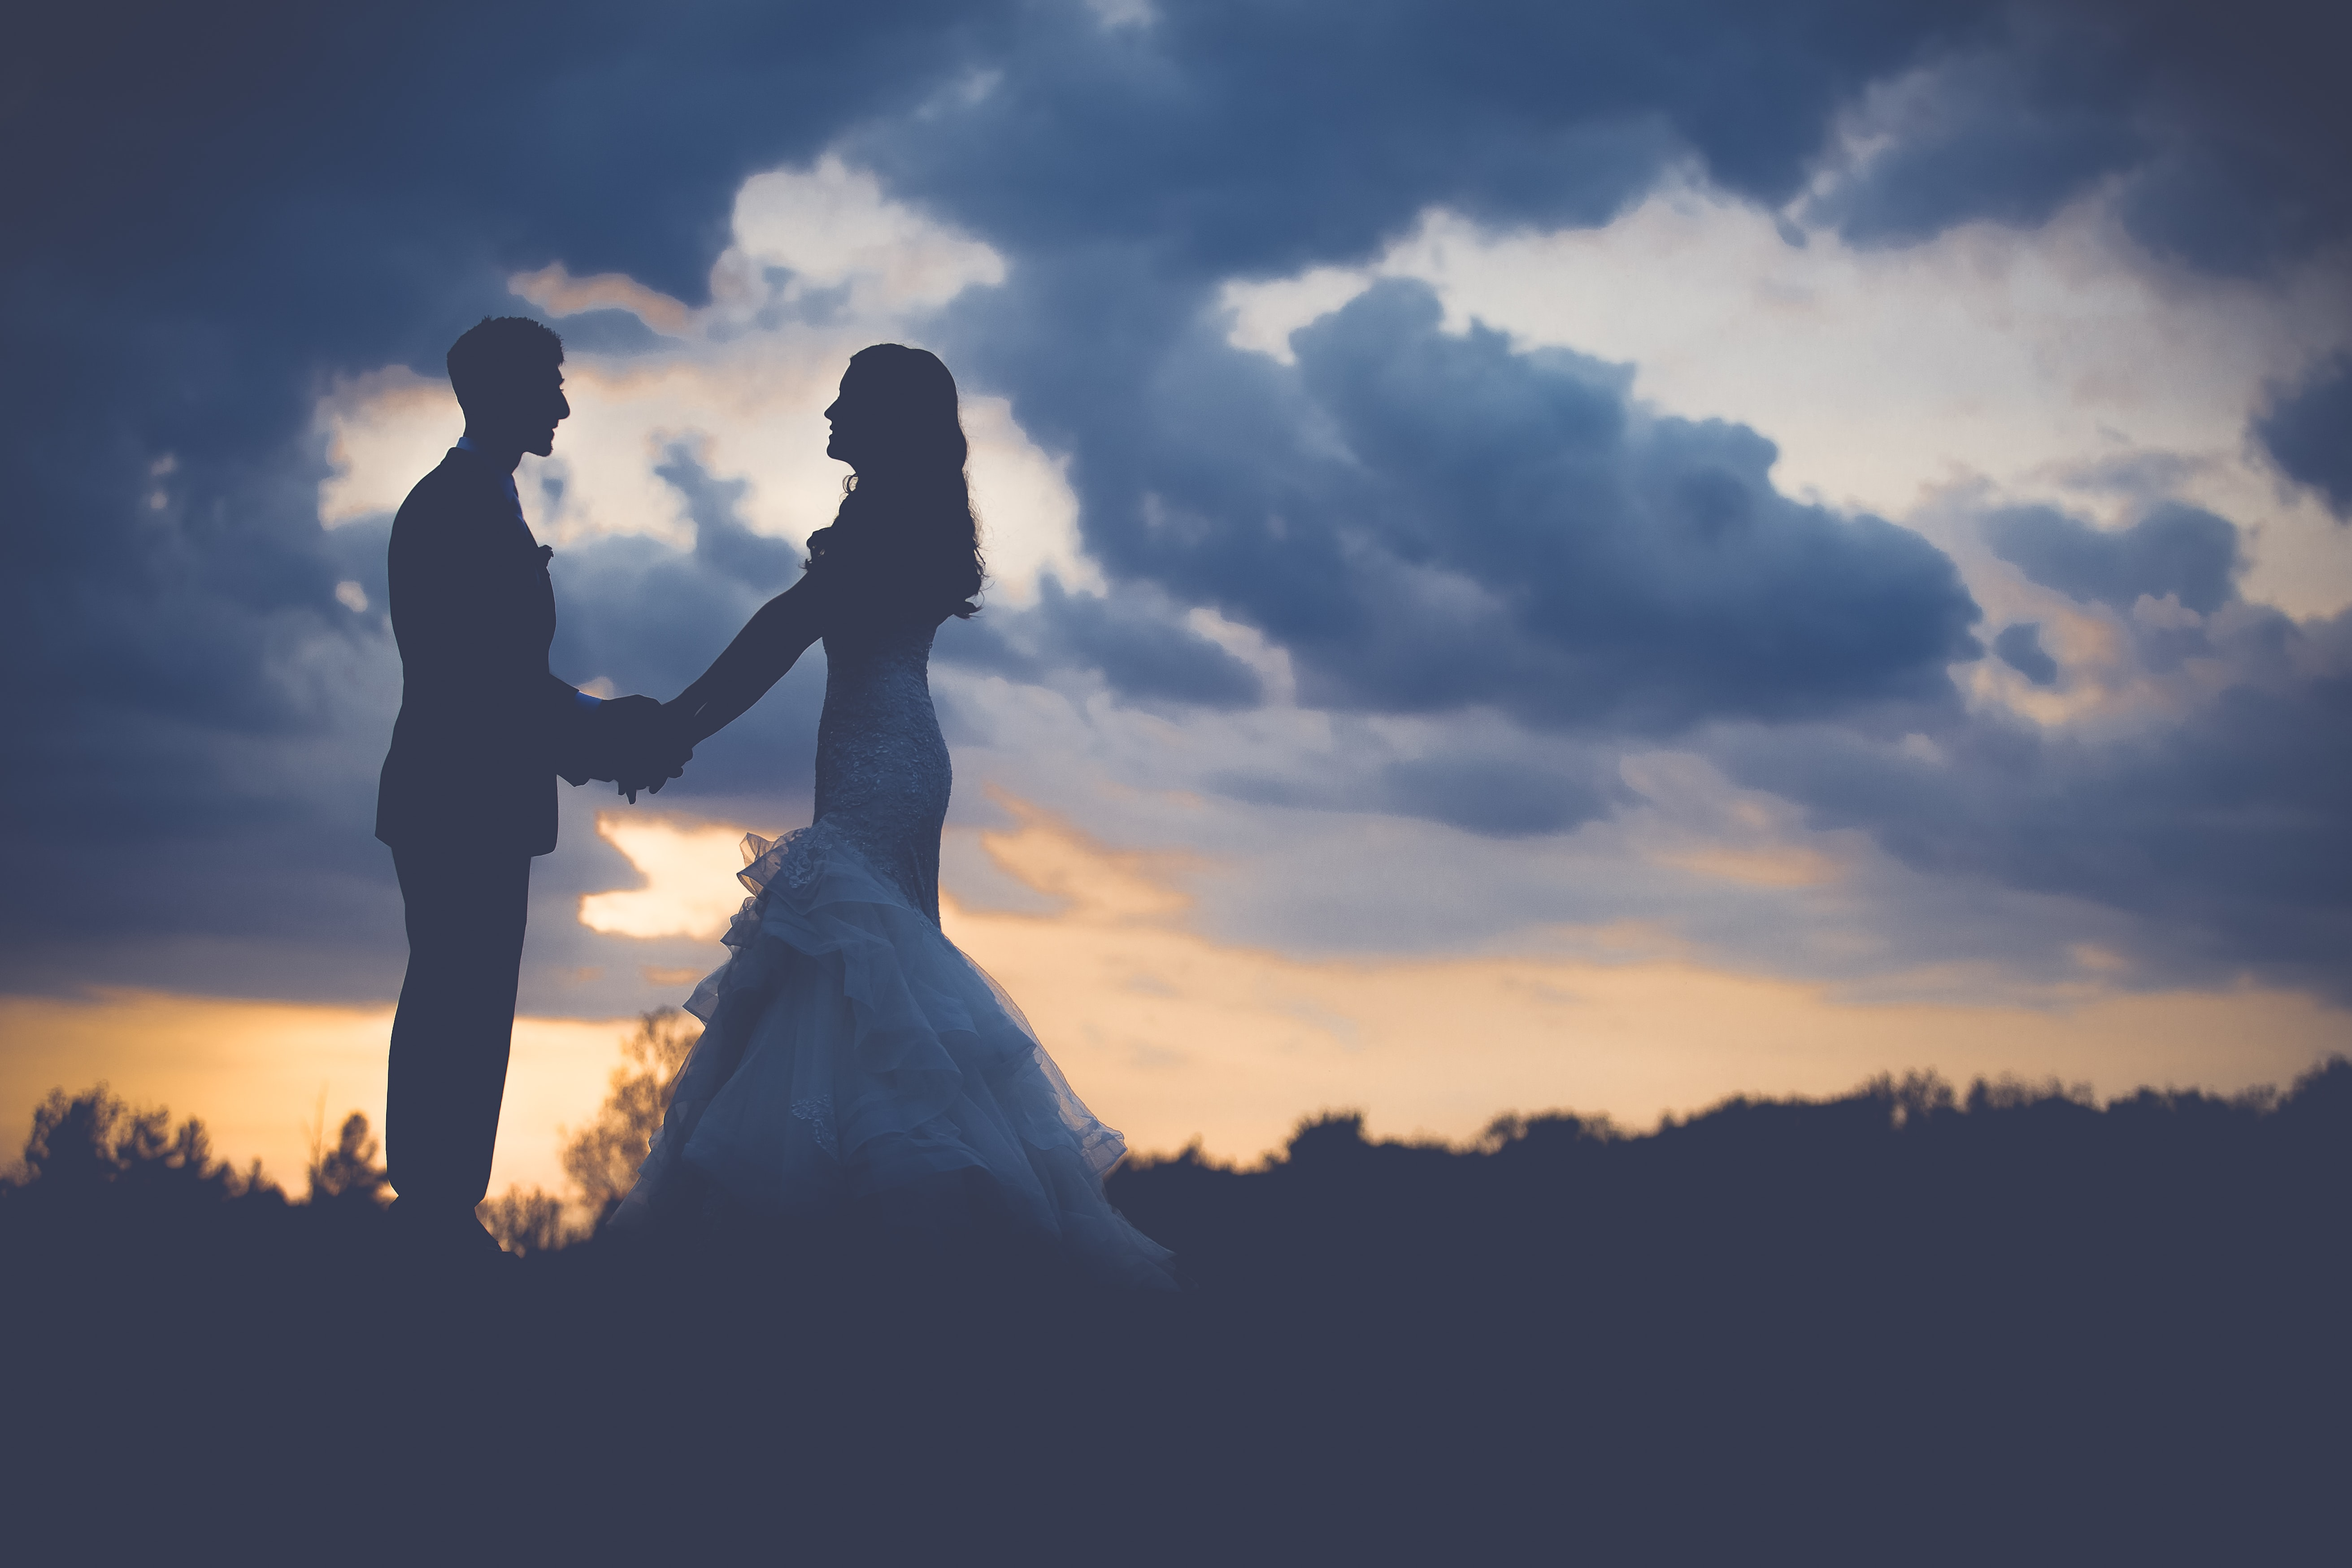 Just-married bride and groom hold hands on a hill at sunset